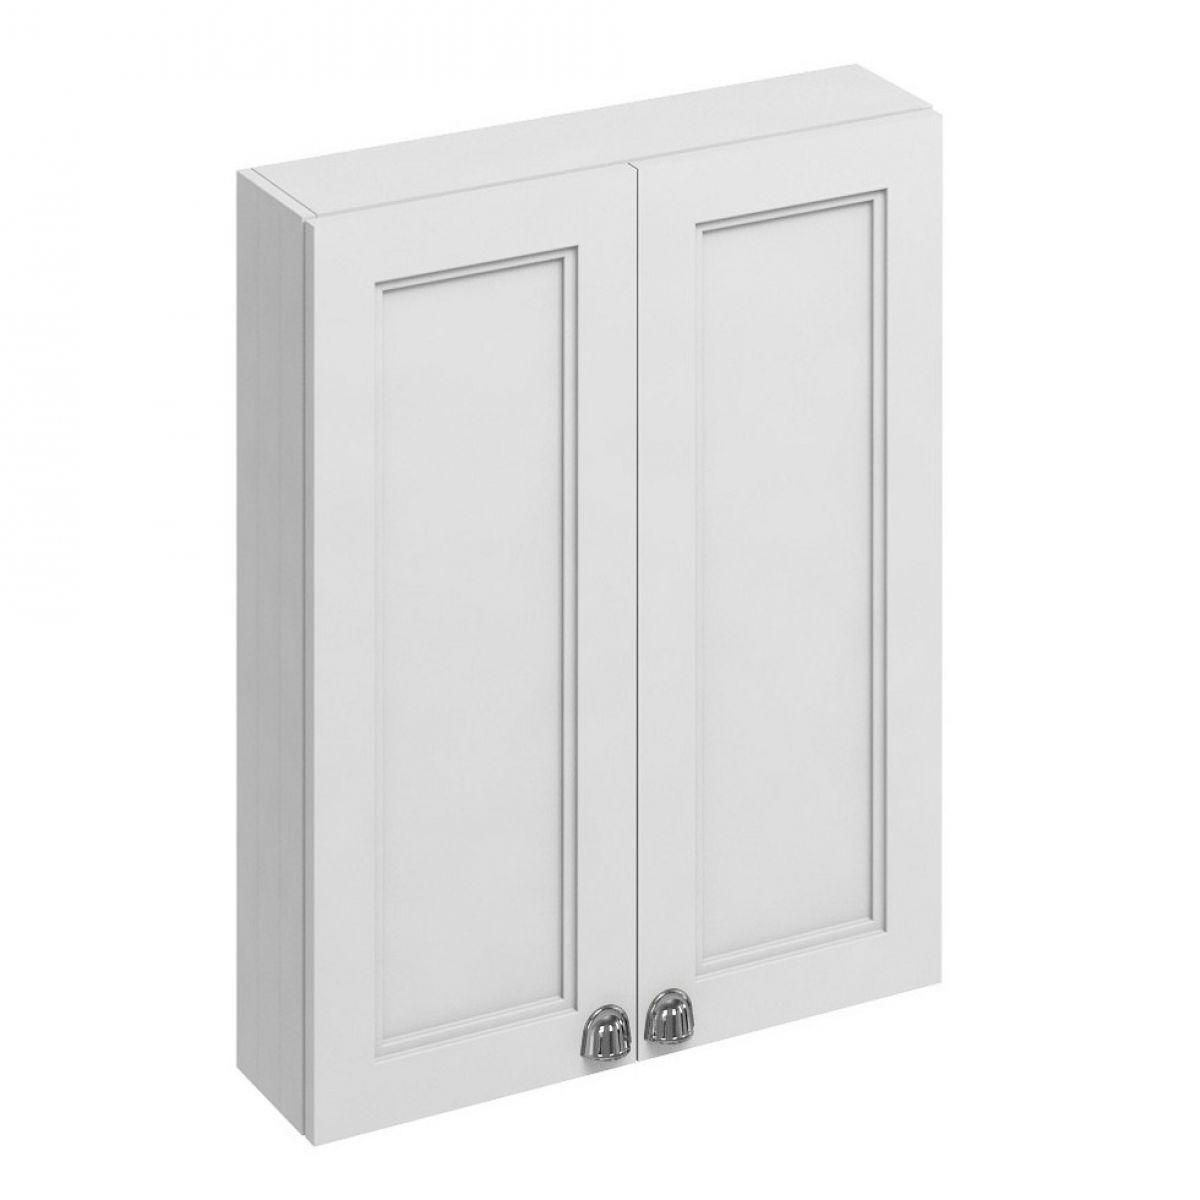 Burlington Fitted Furniture 60cm 2 Door Cabinet